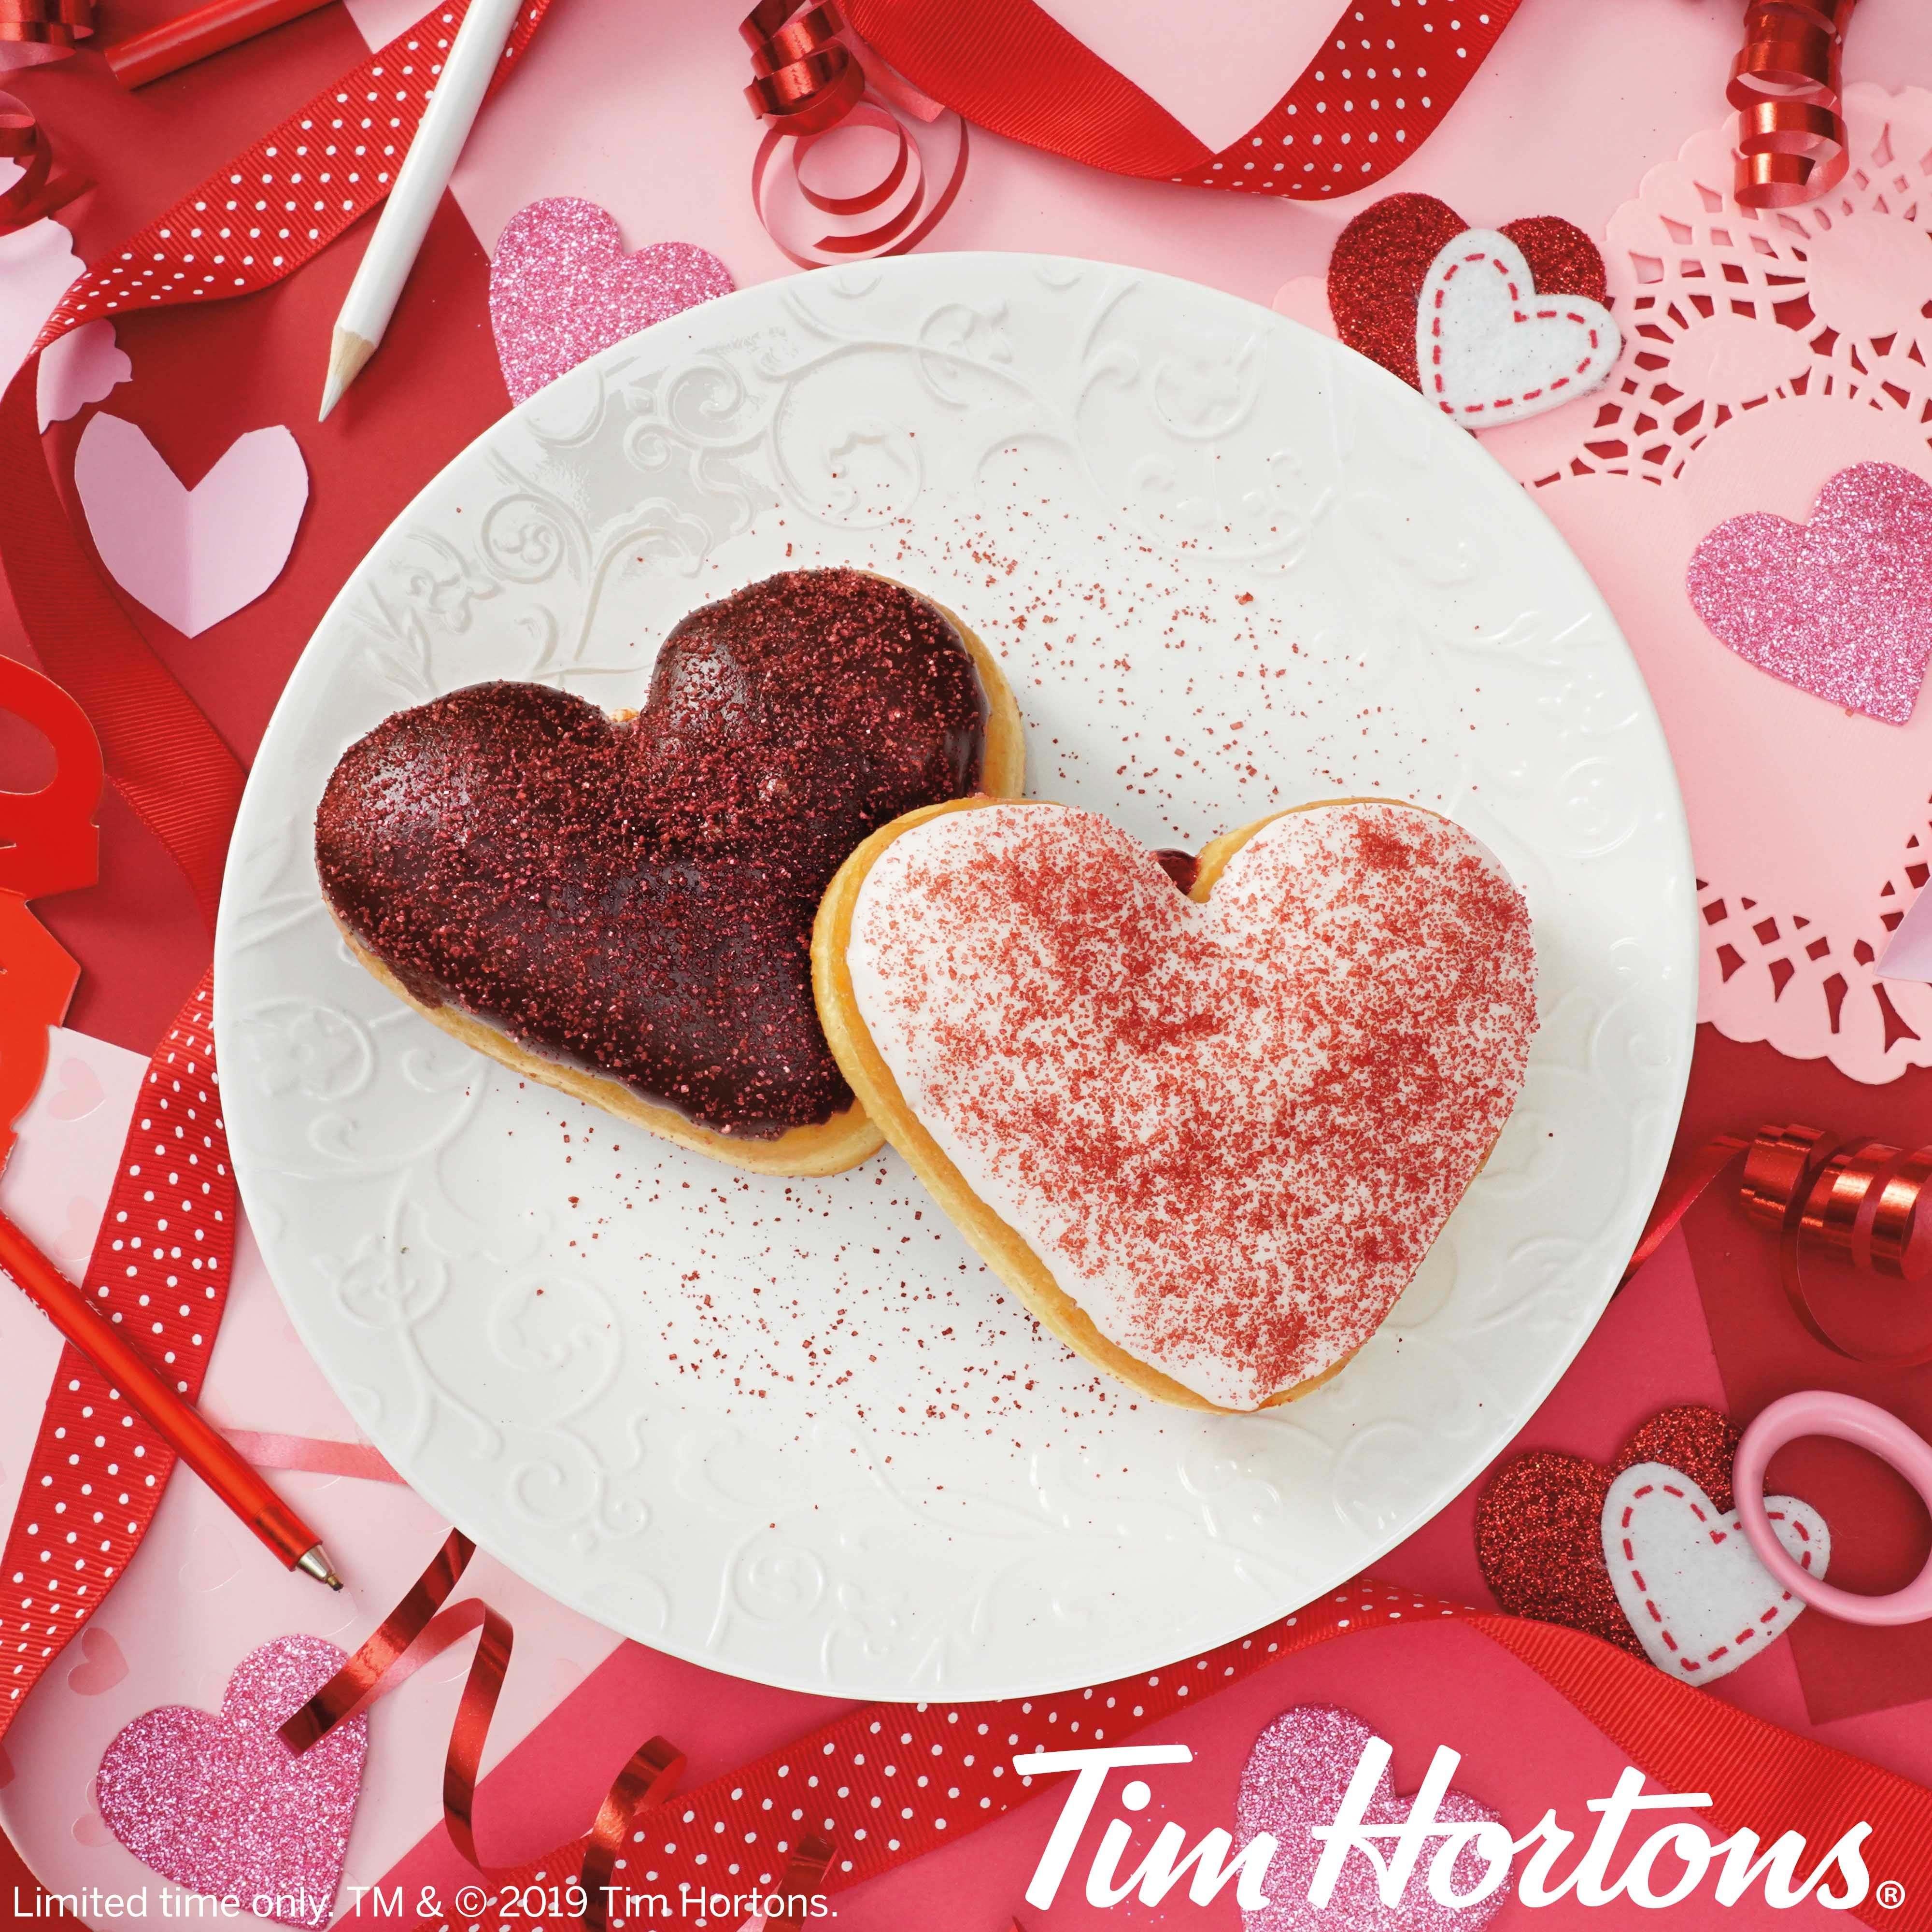 cc71f84de999 Tim Hortons  Valentine s Day Menu Includes Heart-Shaped Donuts